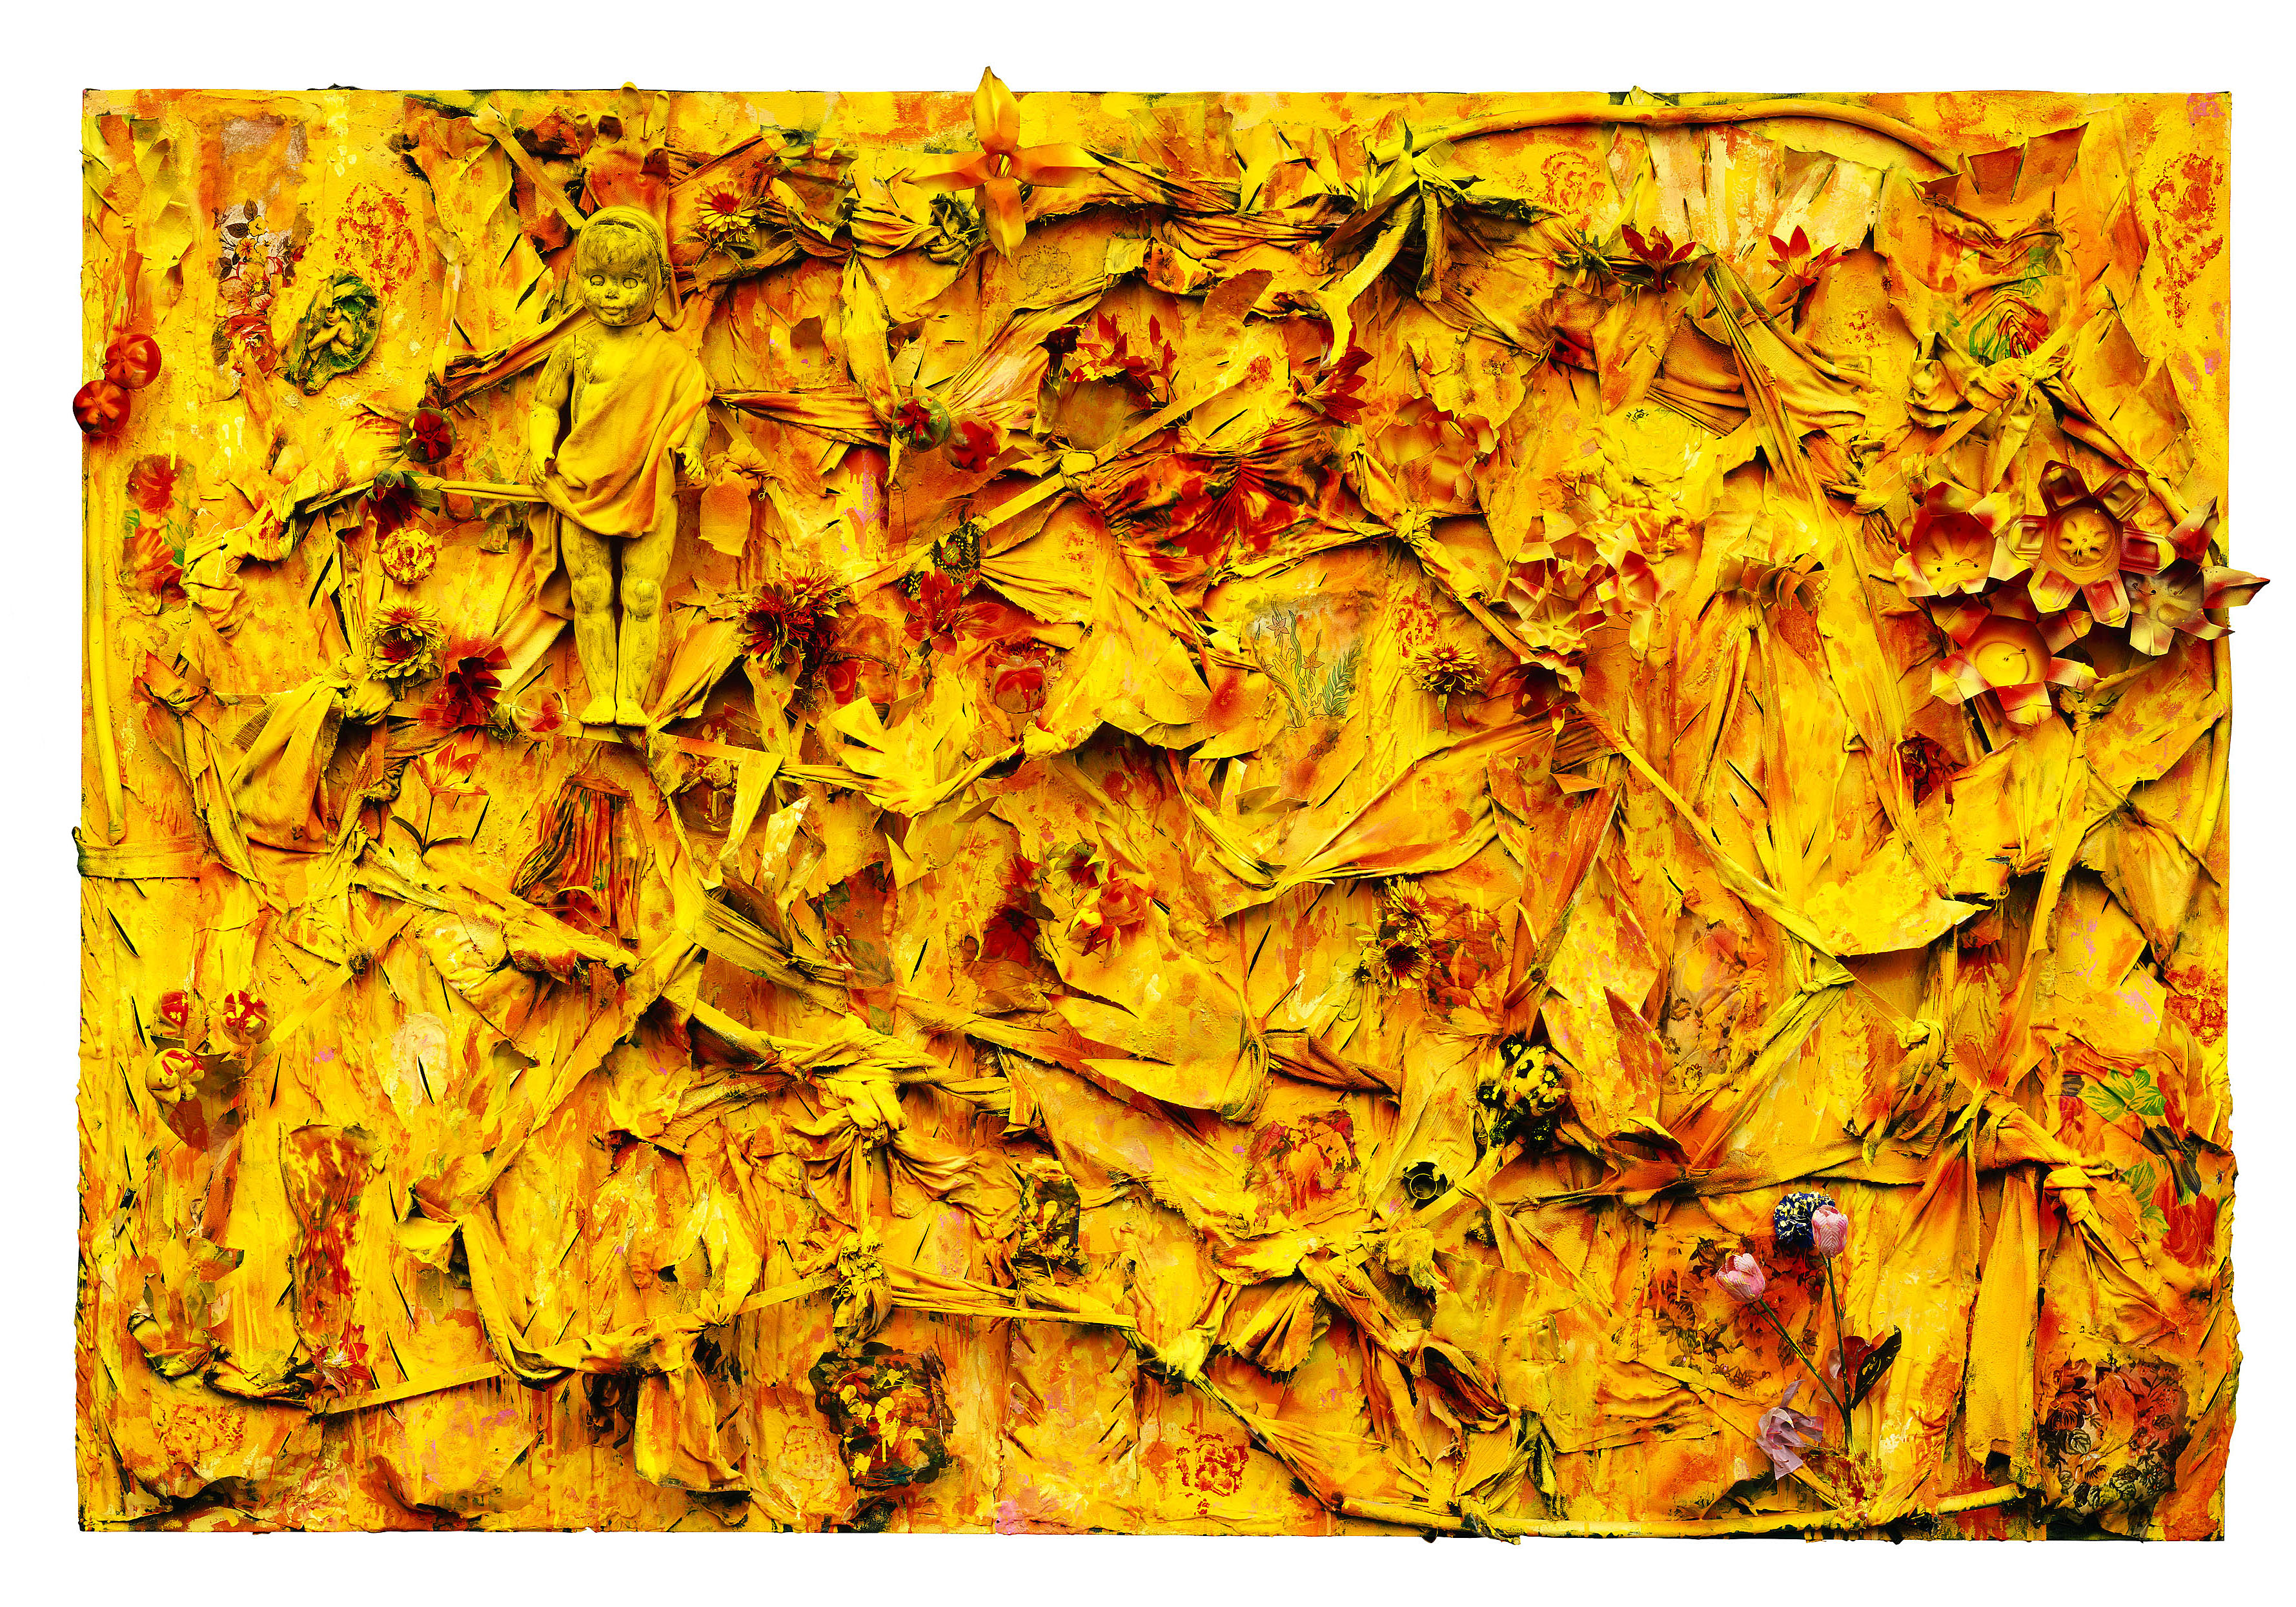 """""""Beginning of Life in the Yellow Jungle,"""" 2003. © Thornton Dial, image by Stephen Pitkin/Pitkin Studio"""